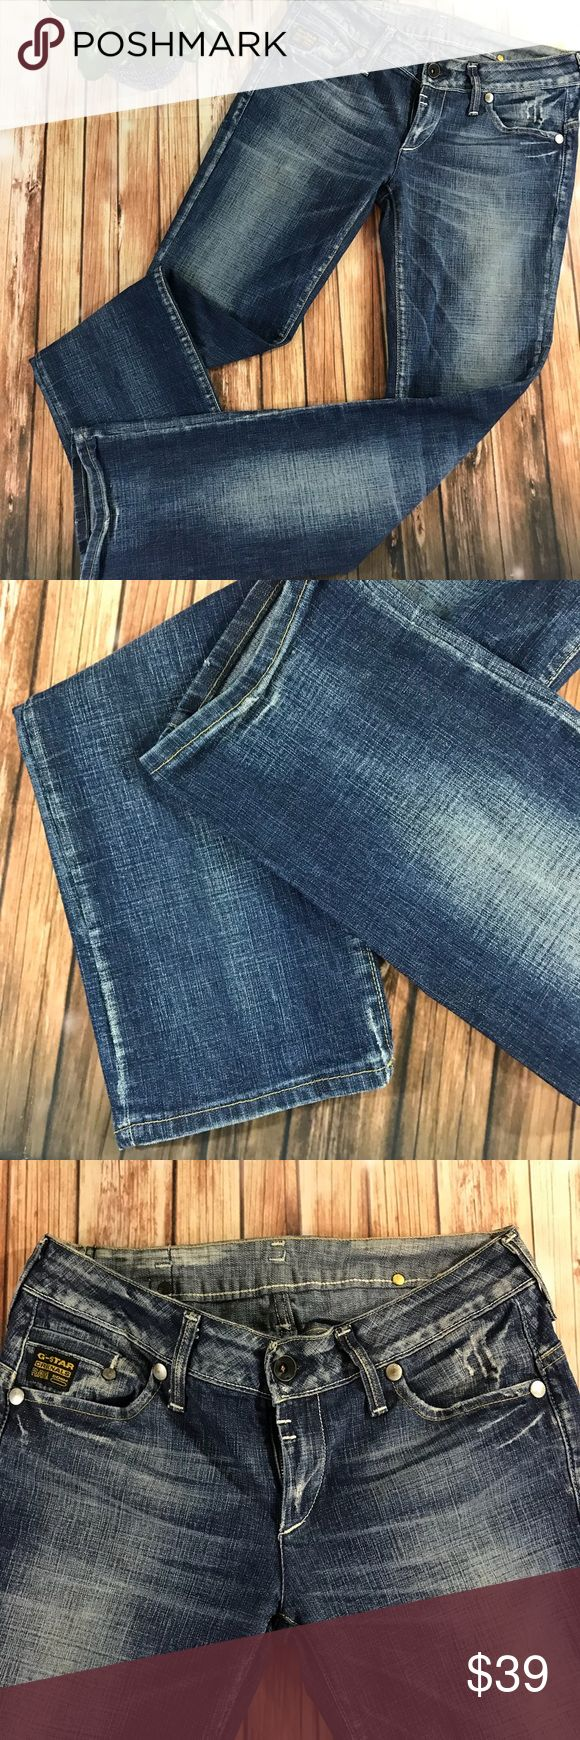 G-star Raw Jeans Gently used. Nice wash, slim straight leg, low rise, Italian size 30 will be perfect for US 6 there is some staining on back pockets ( reflect the price) G-Star Jeans Straight Leg